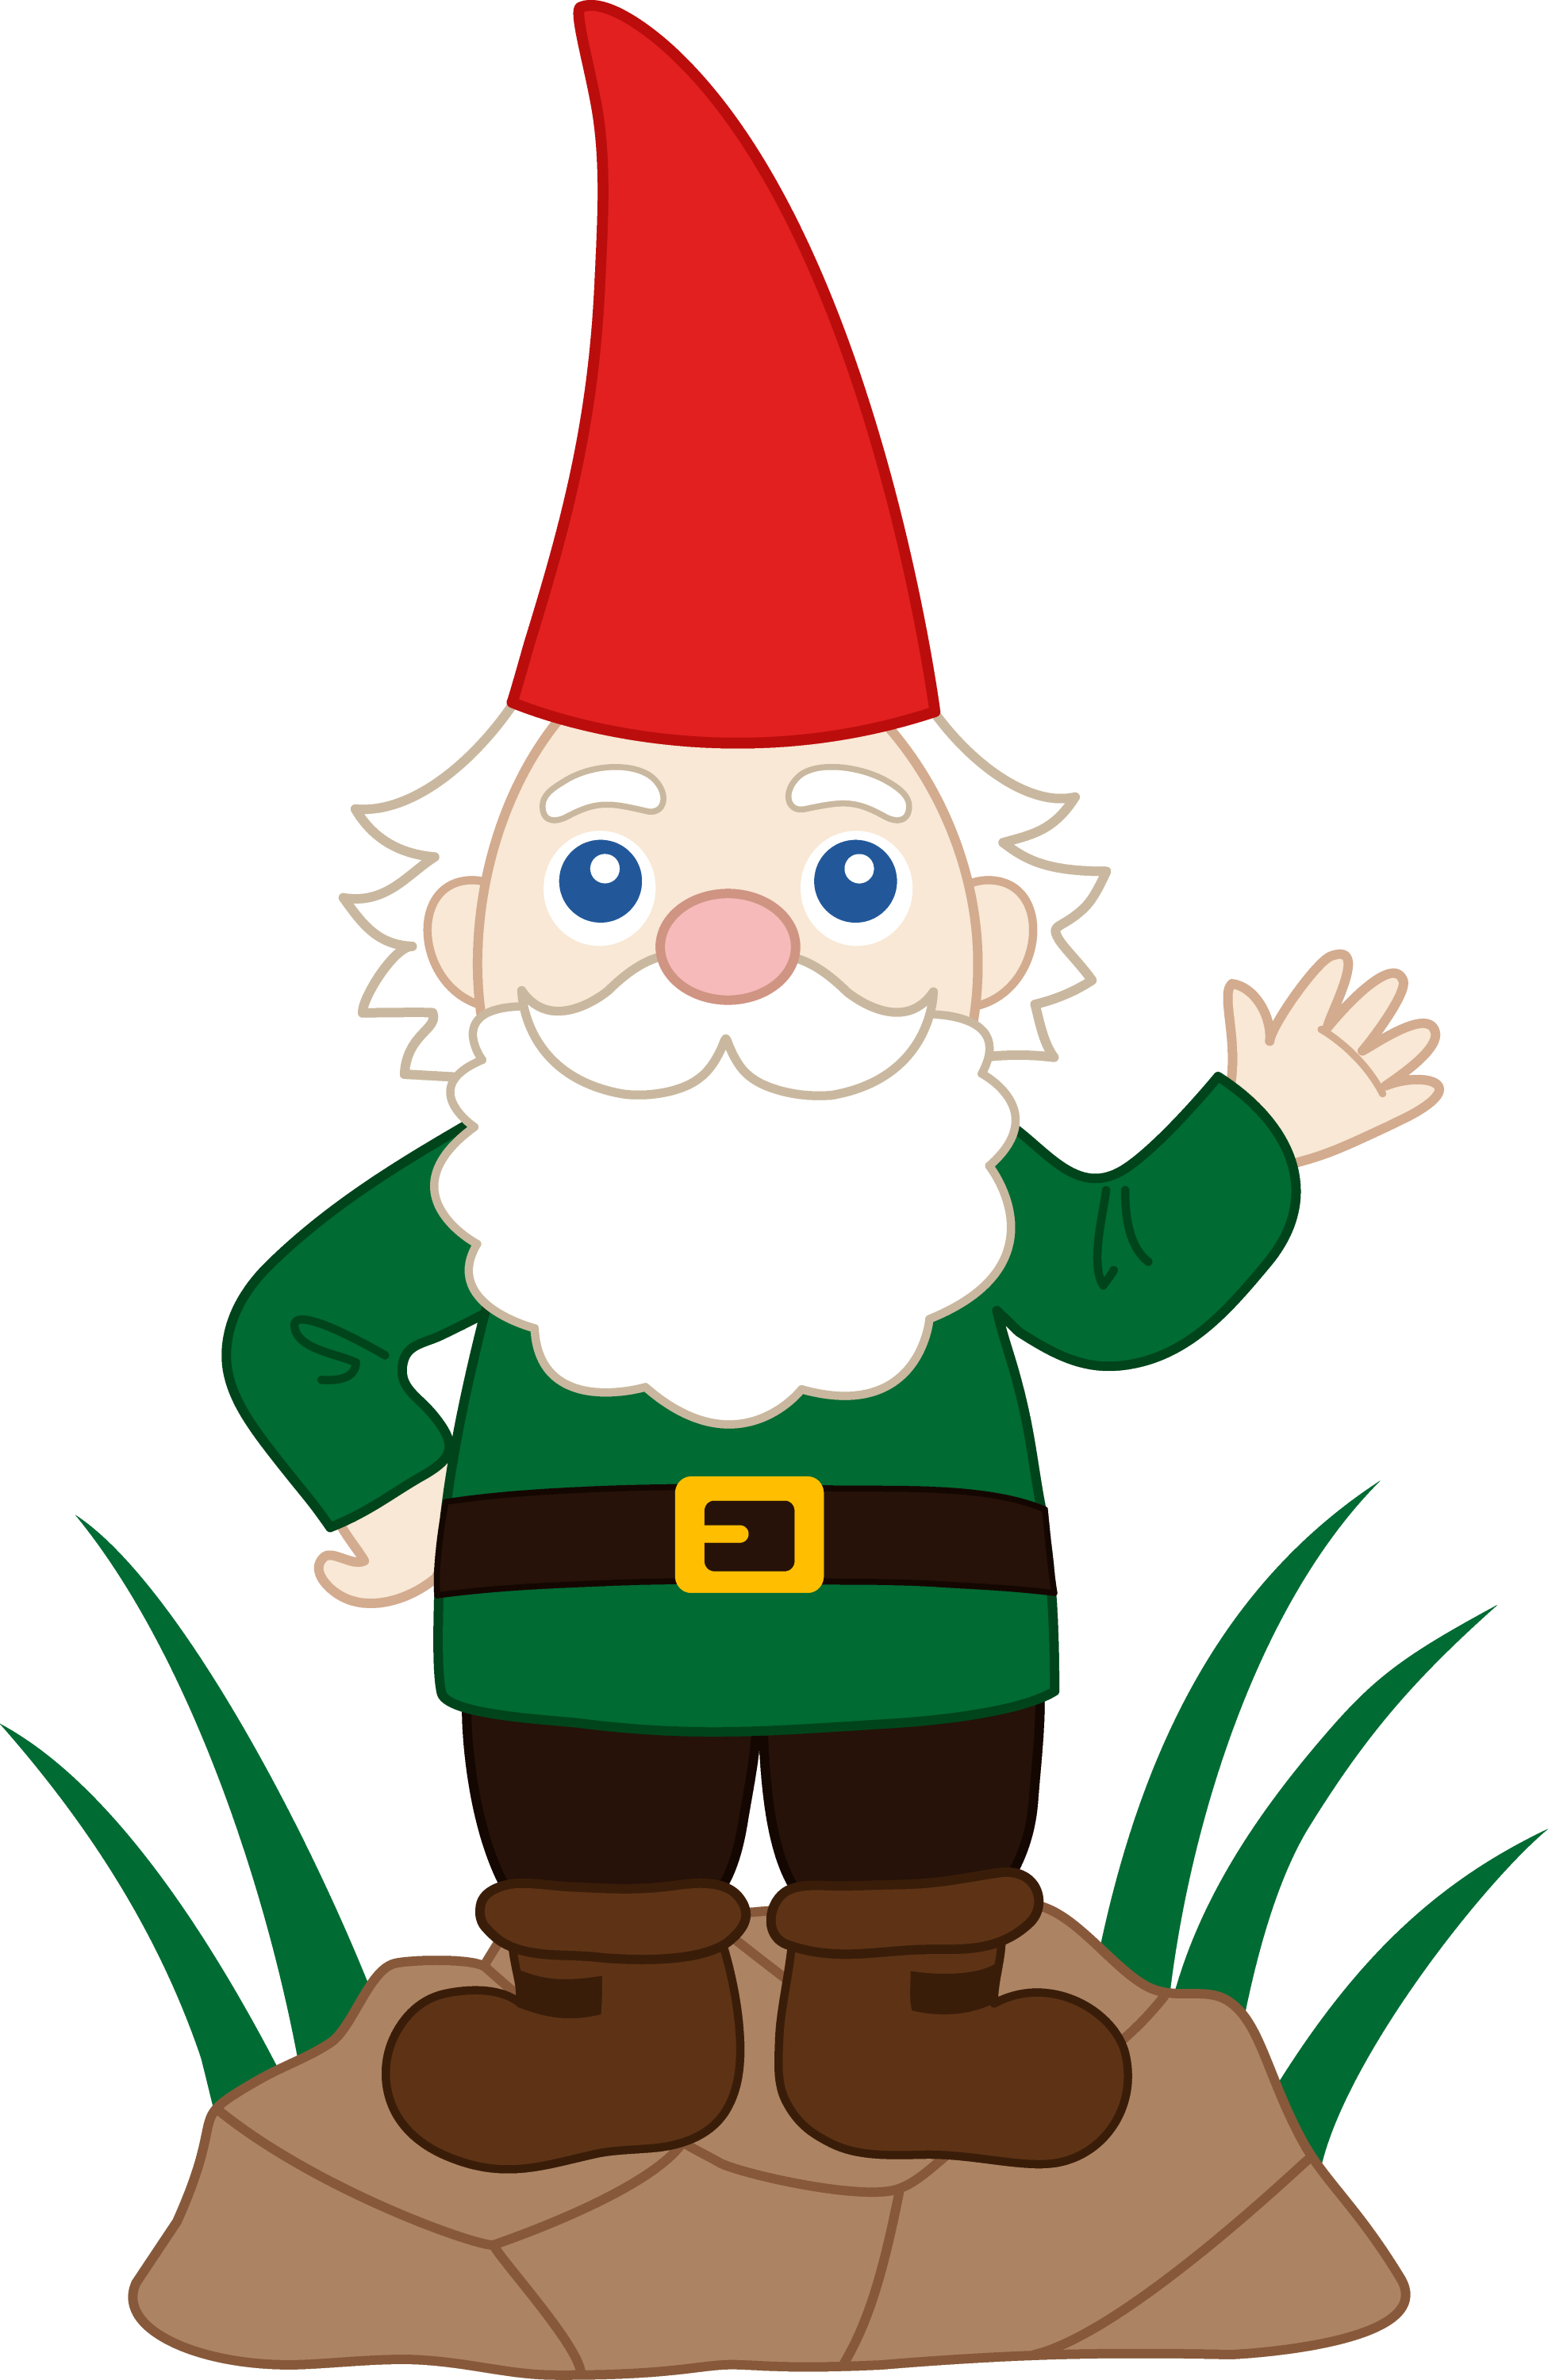 Friendly Garden Gnome - Free Clip Art: sweetclipart.com/friendly-garden-gnome-1464